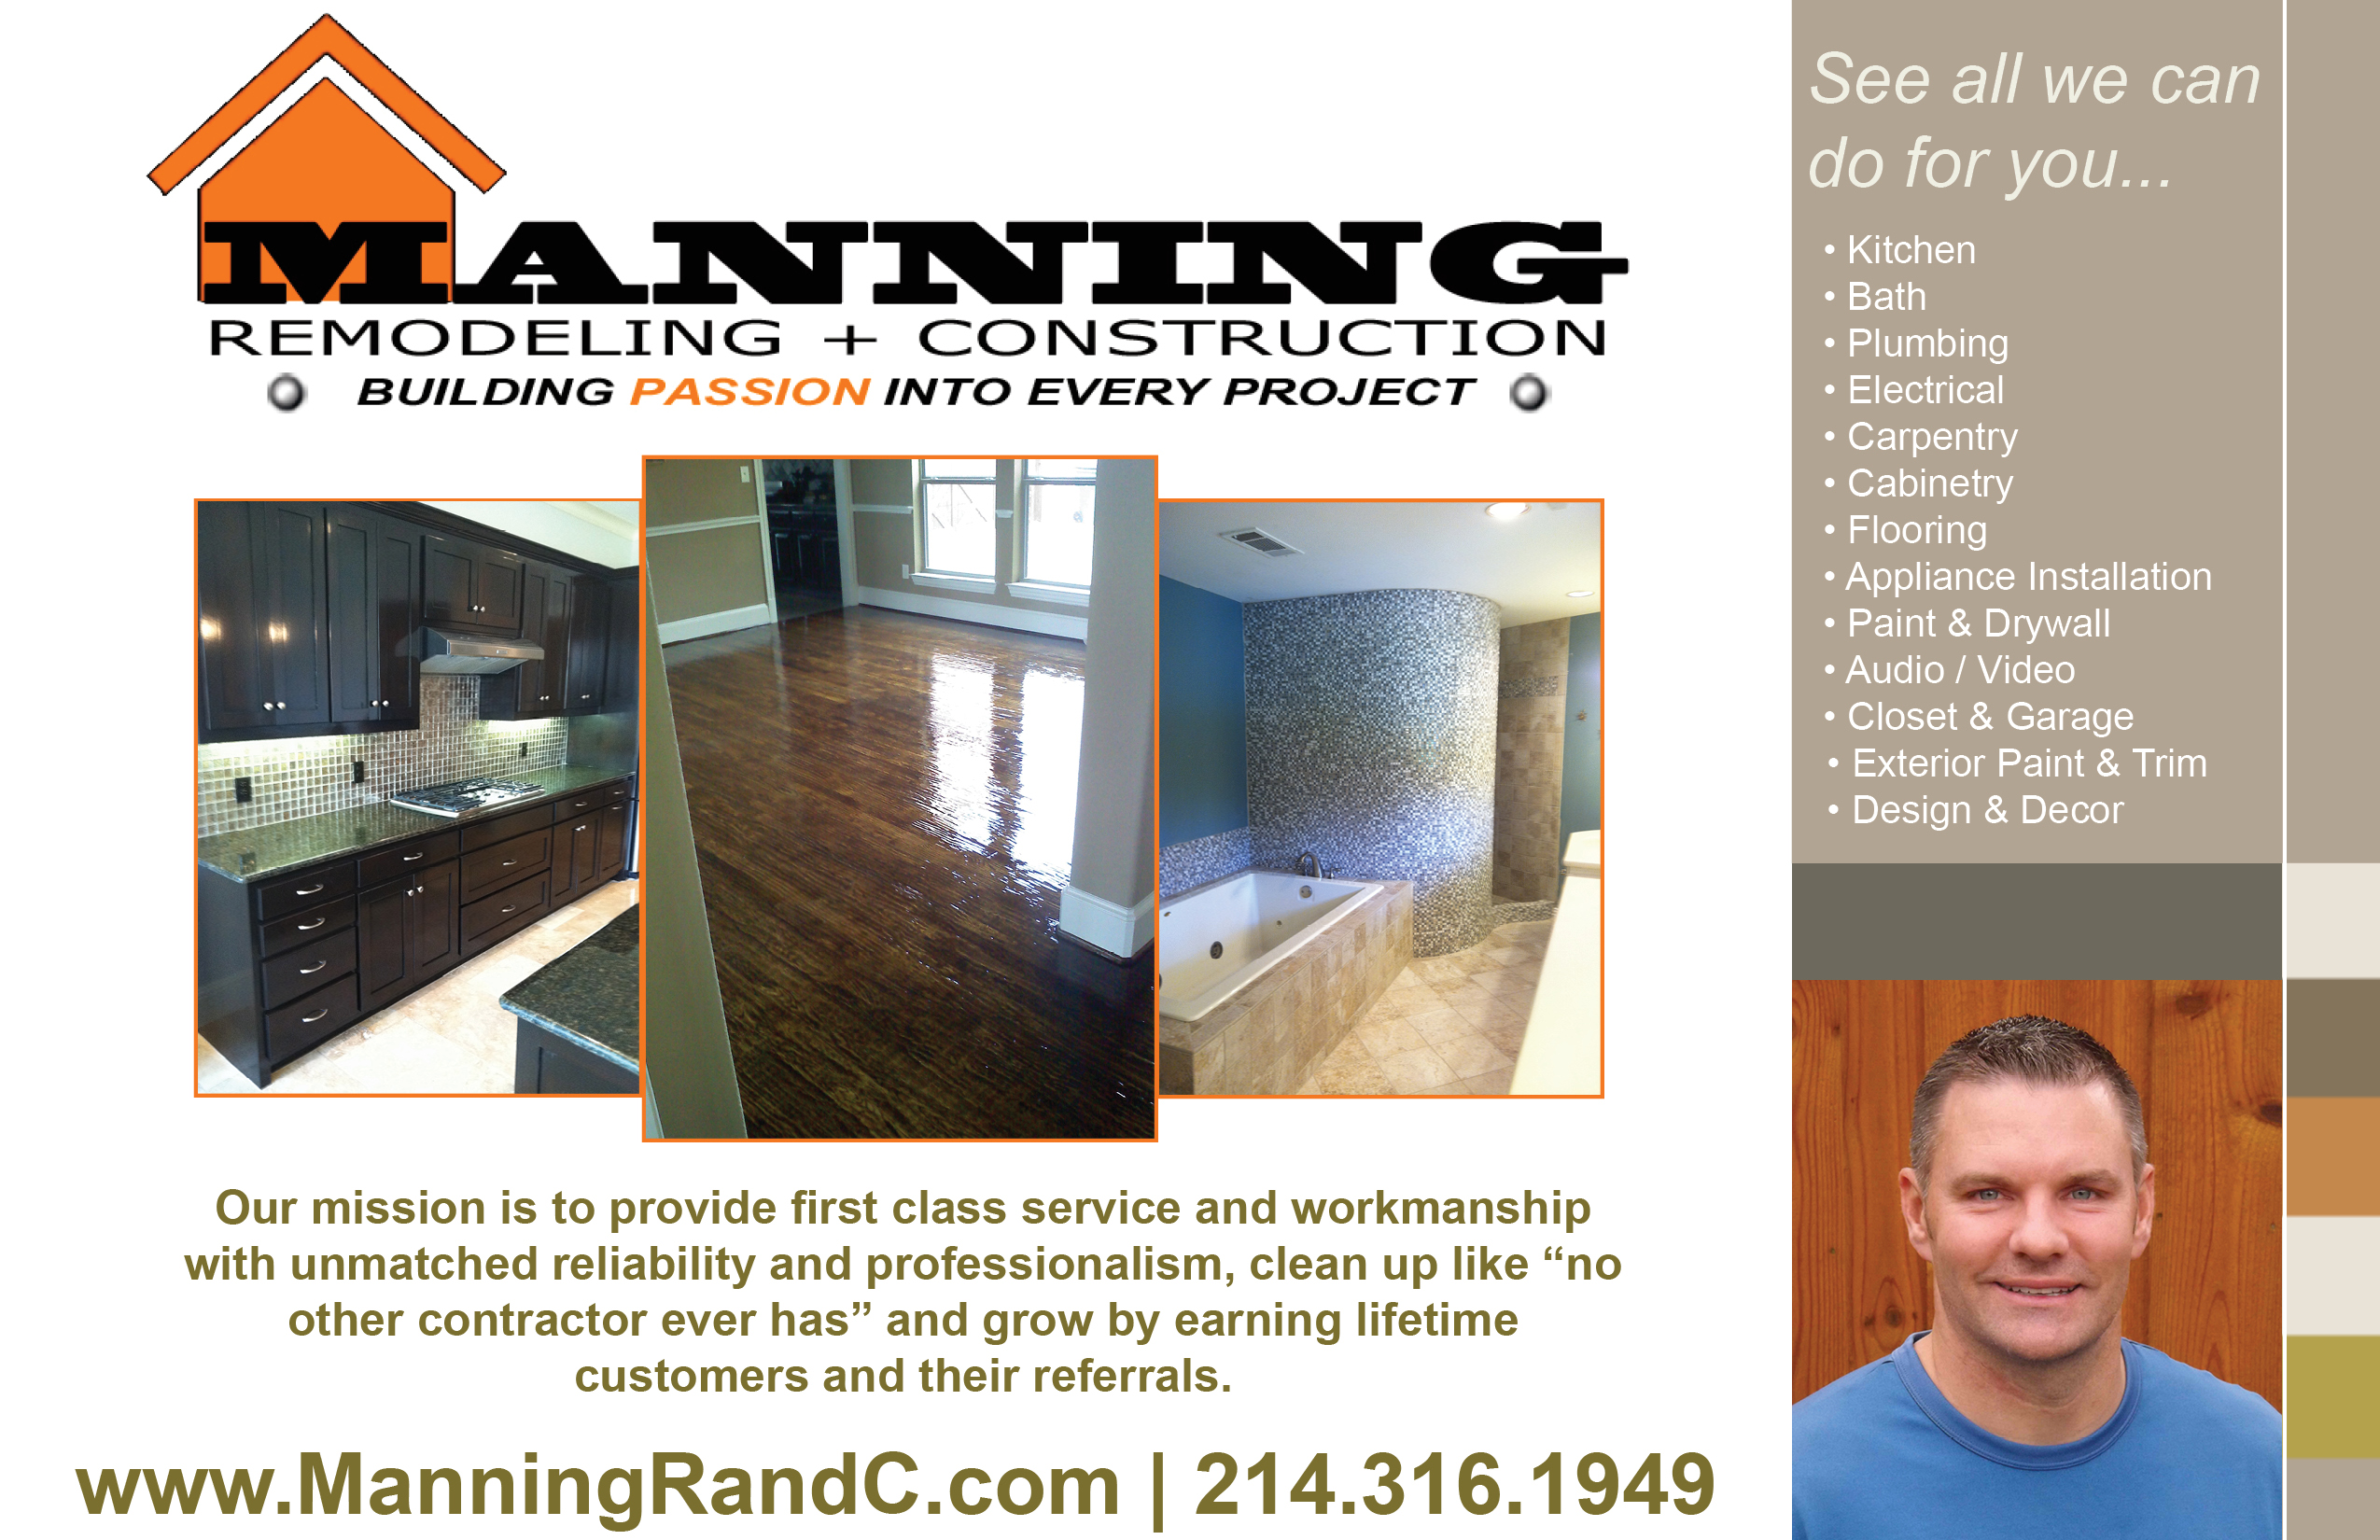 Manning Remodeling and Construction Flyer - Front